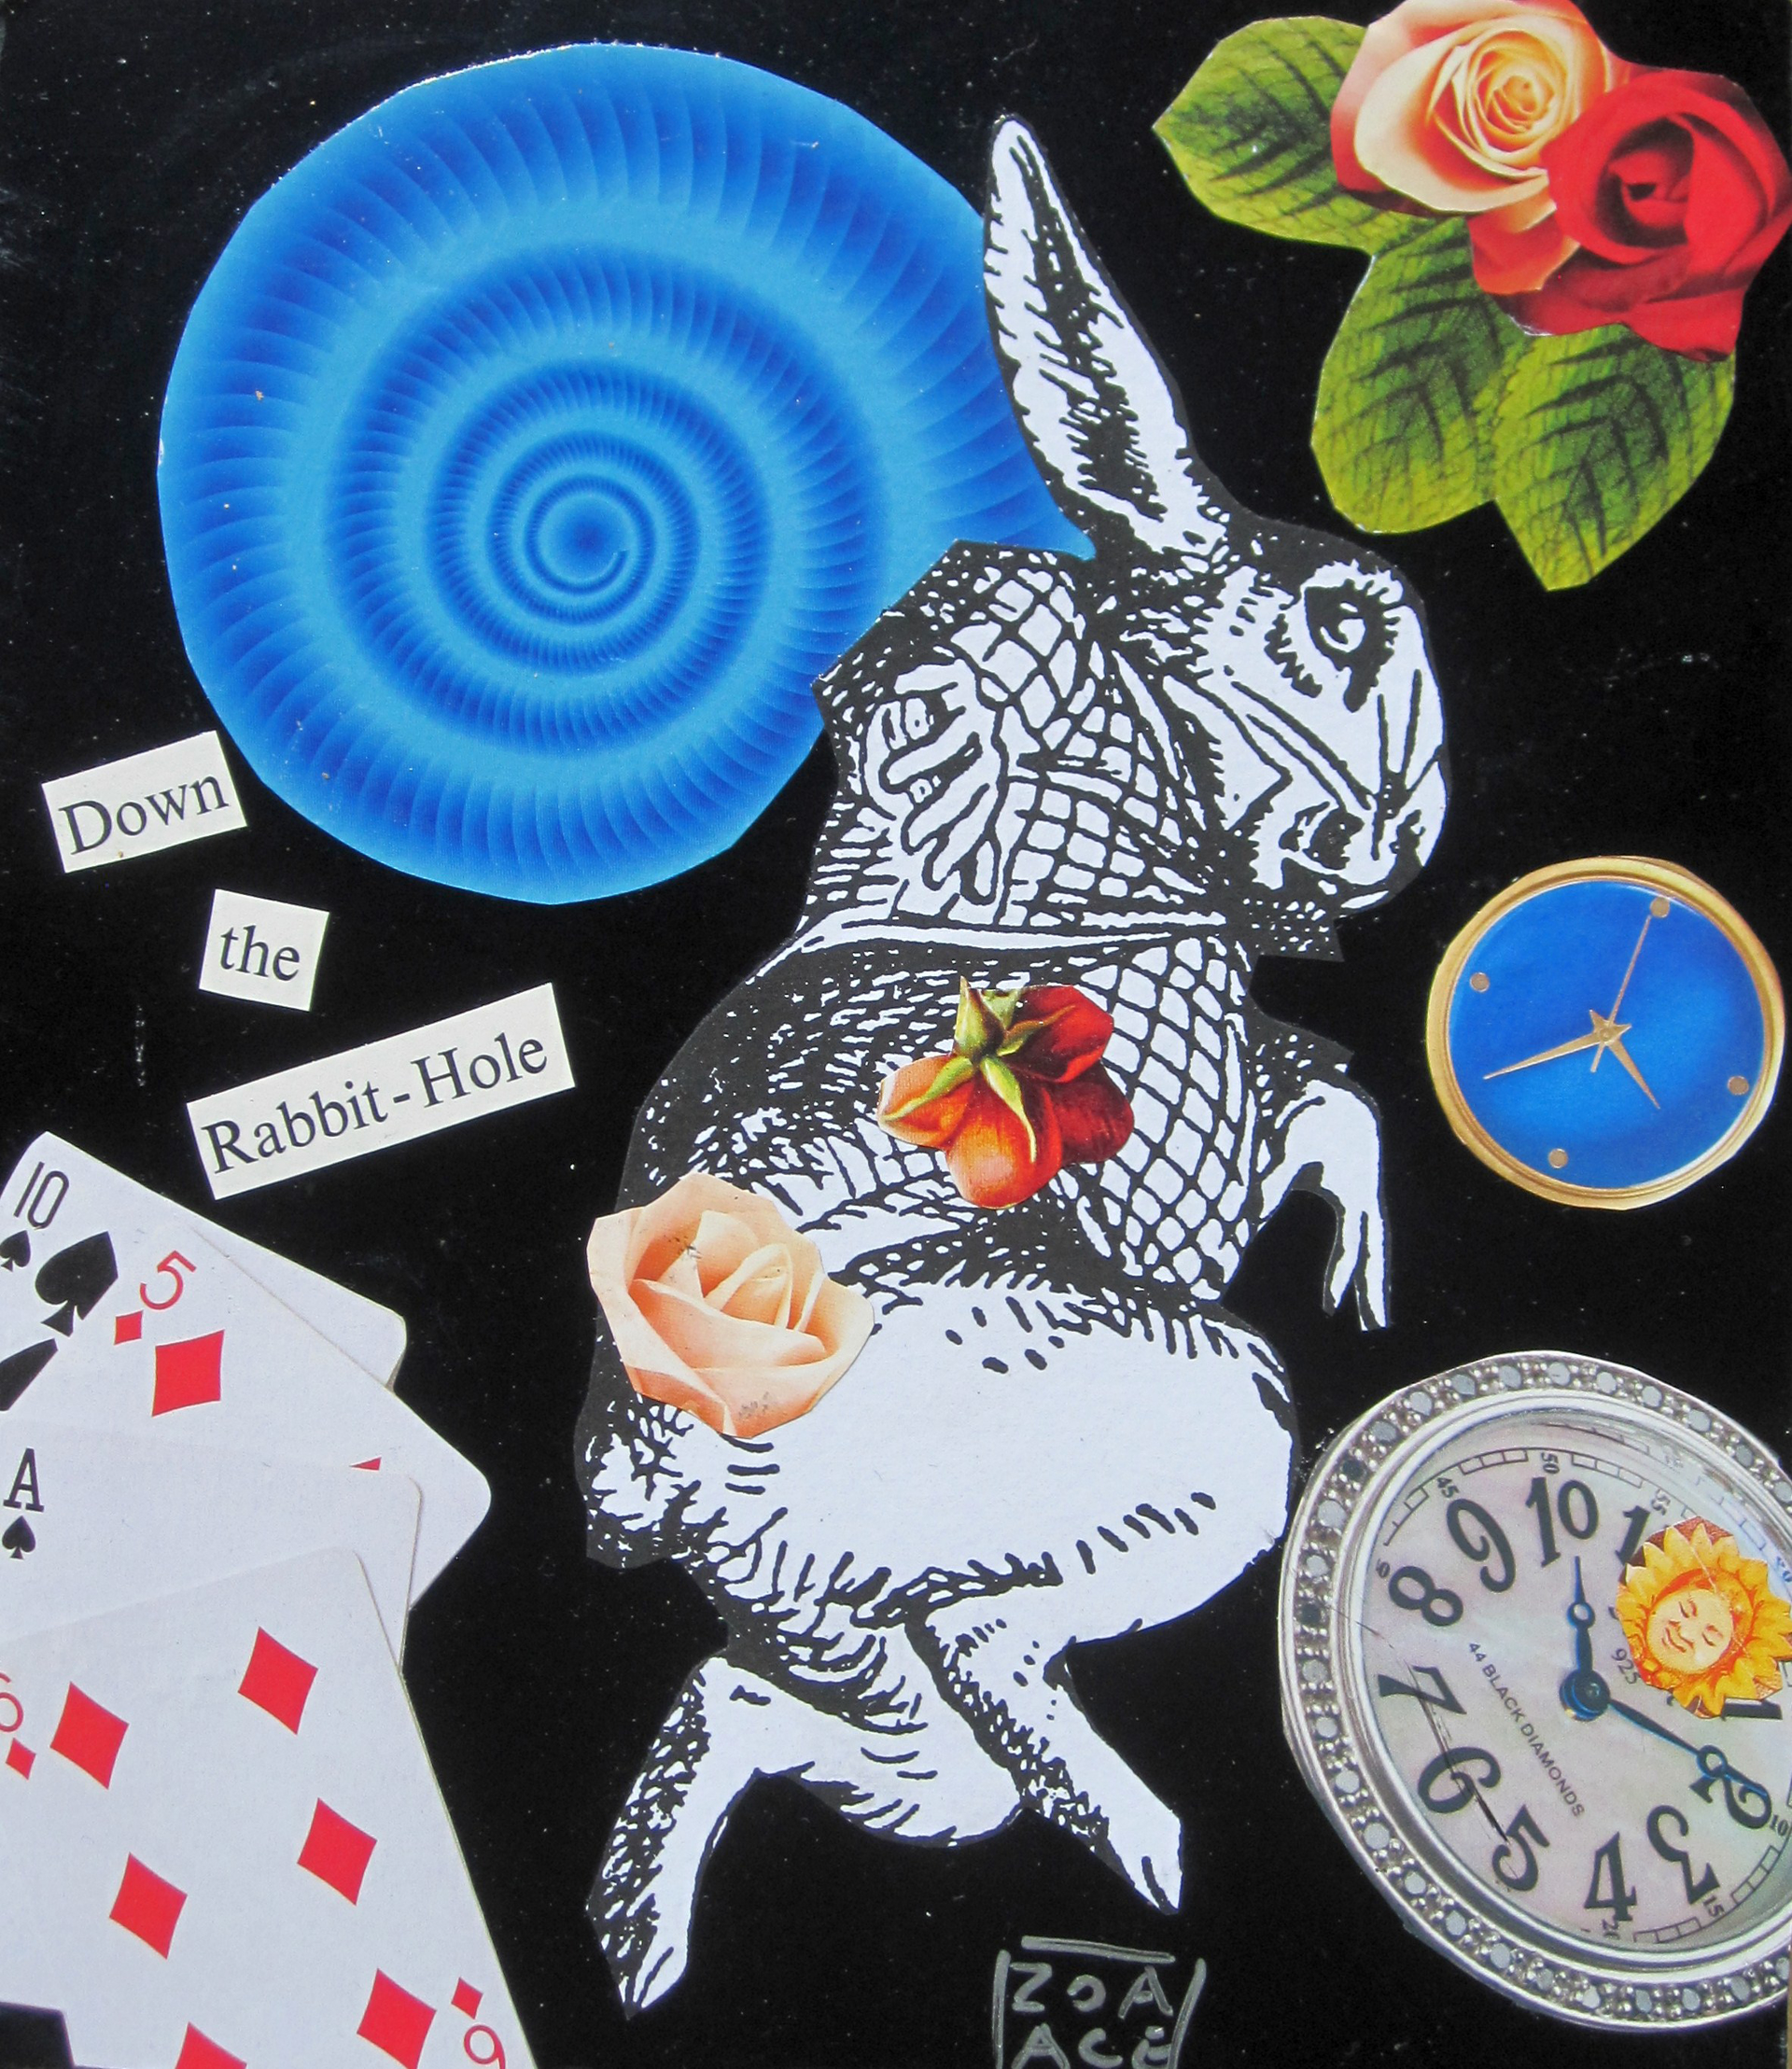 Down the Rabbit Hole by Zoa Ace